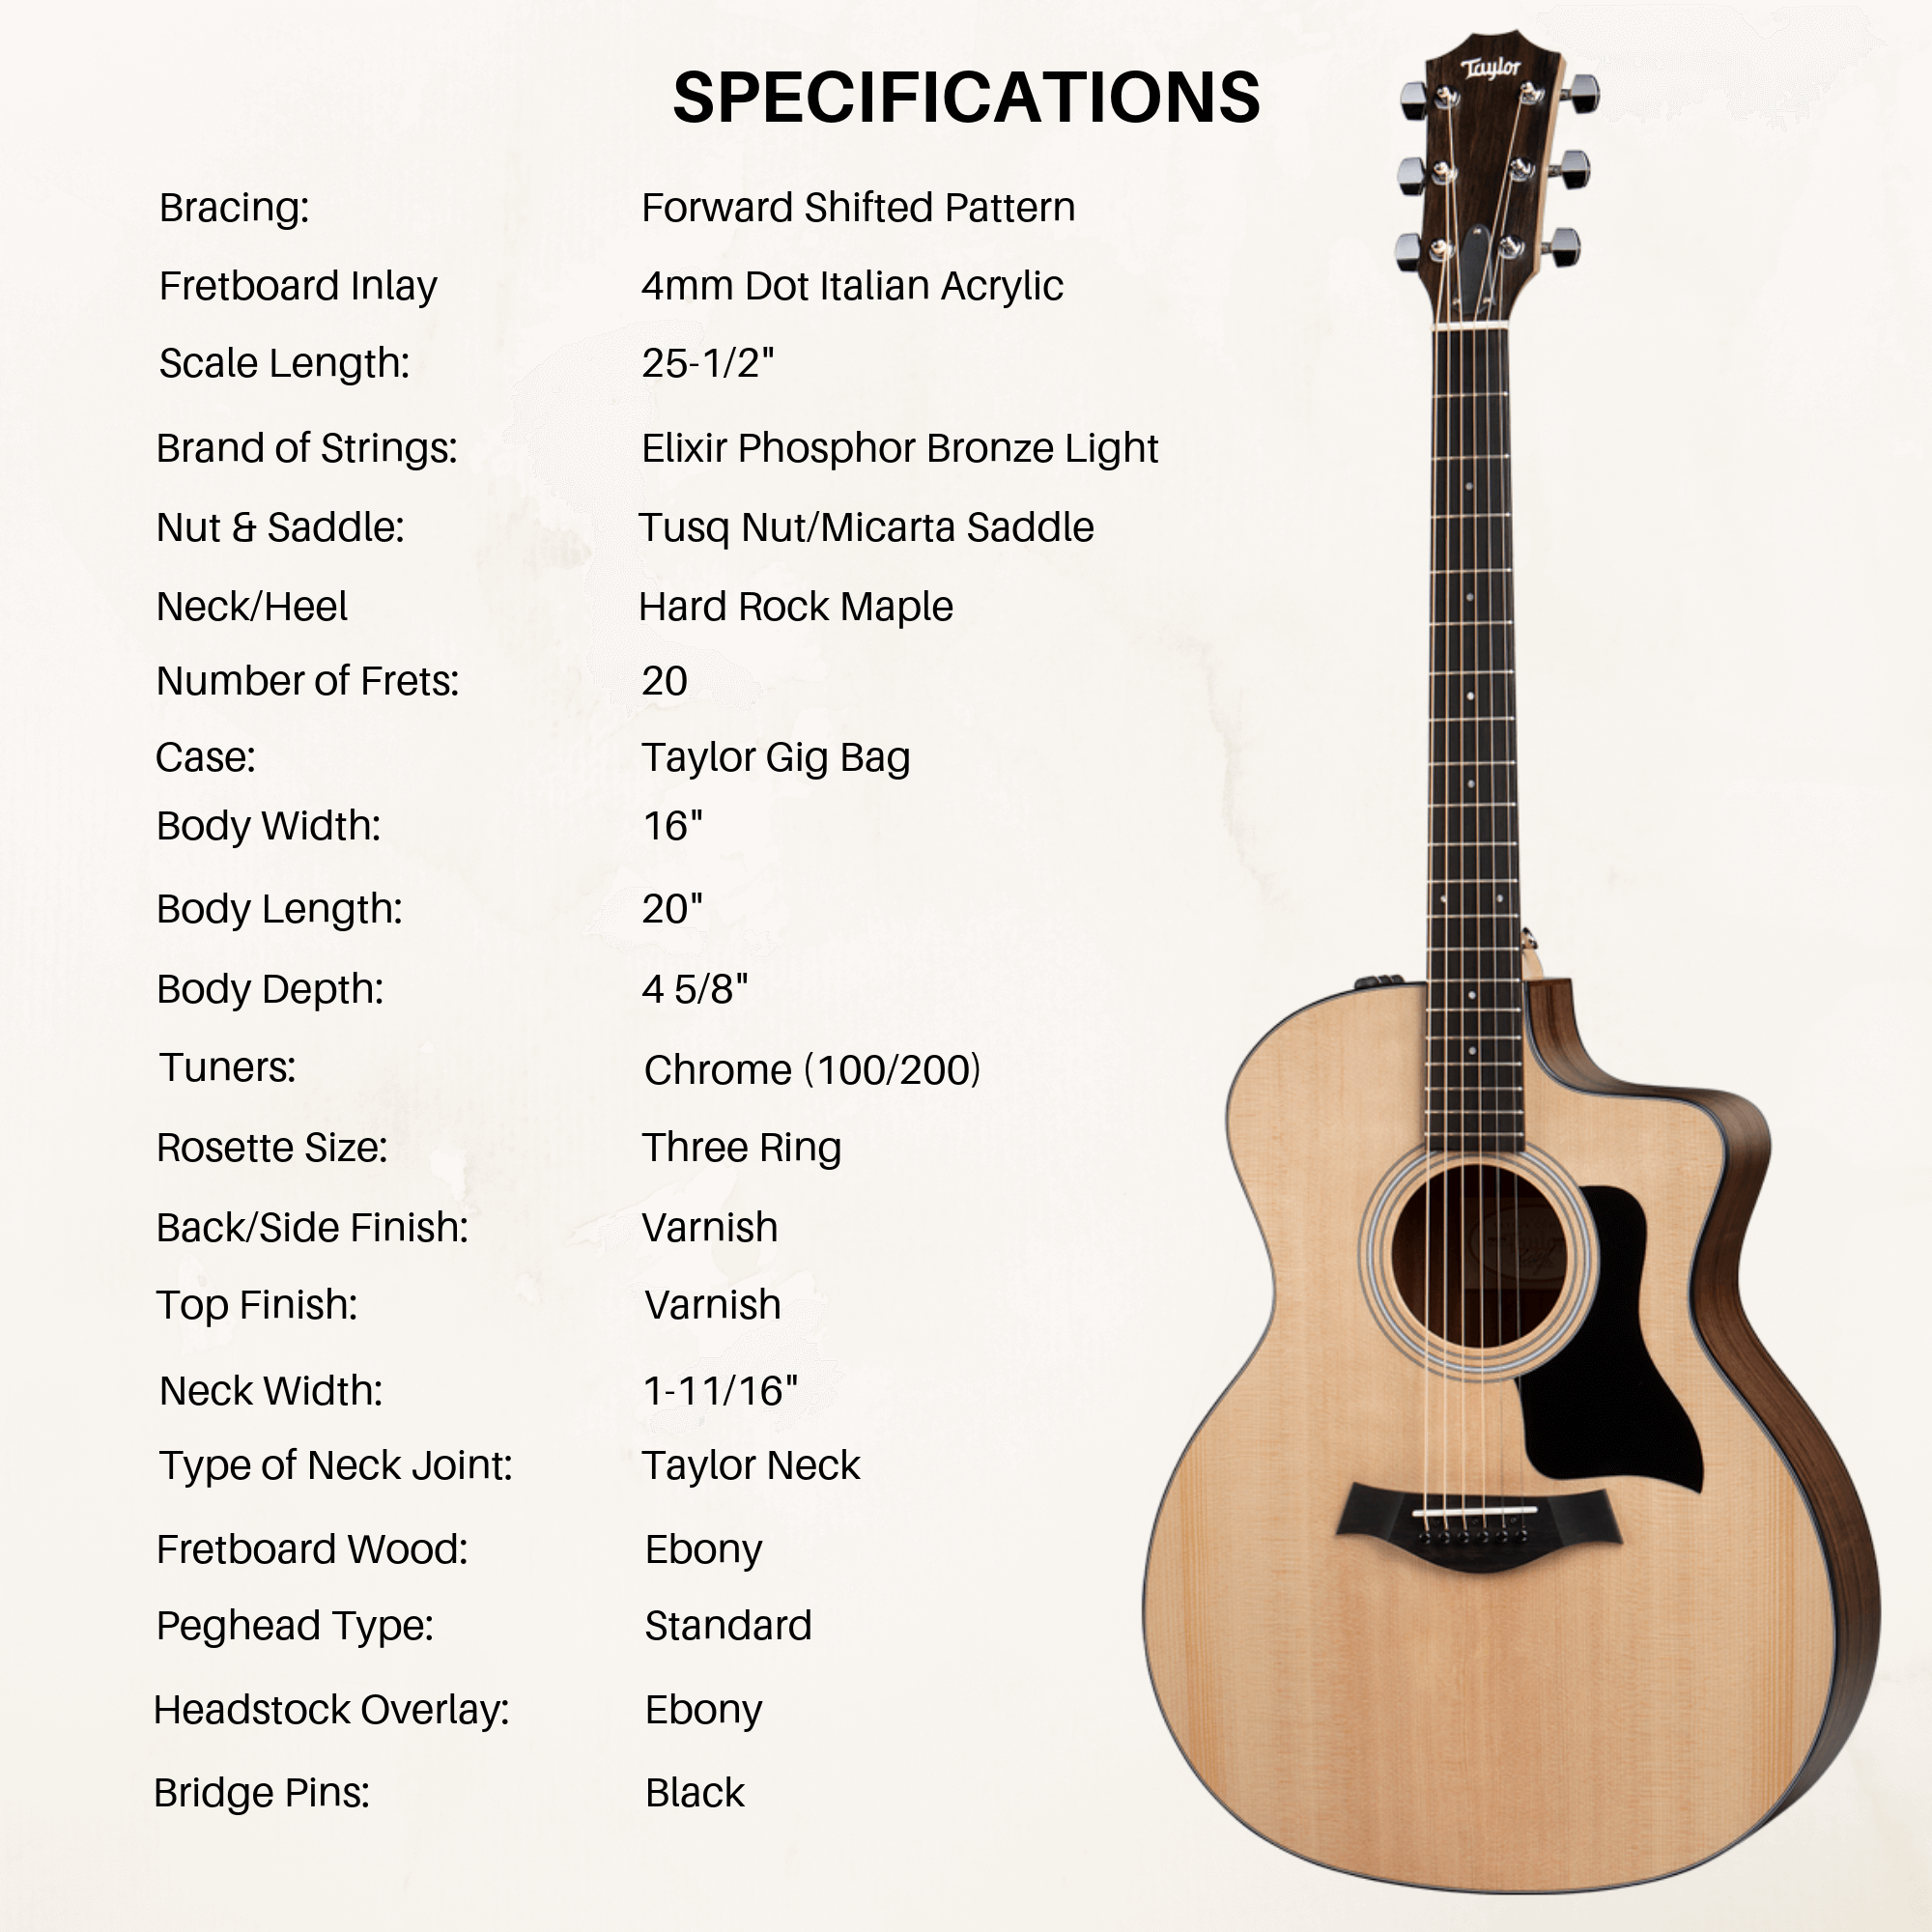 Taylor 114ce Sitka Buy Sell Online Acoustic Guitars With Cheap Price Lazada Ph